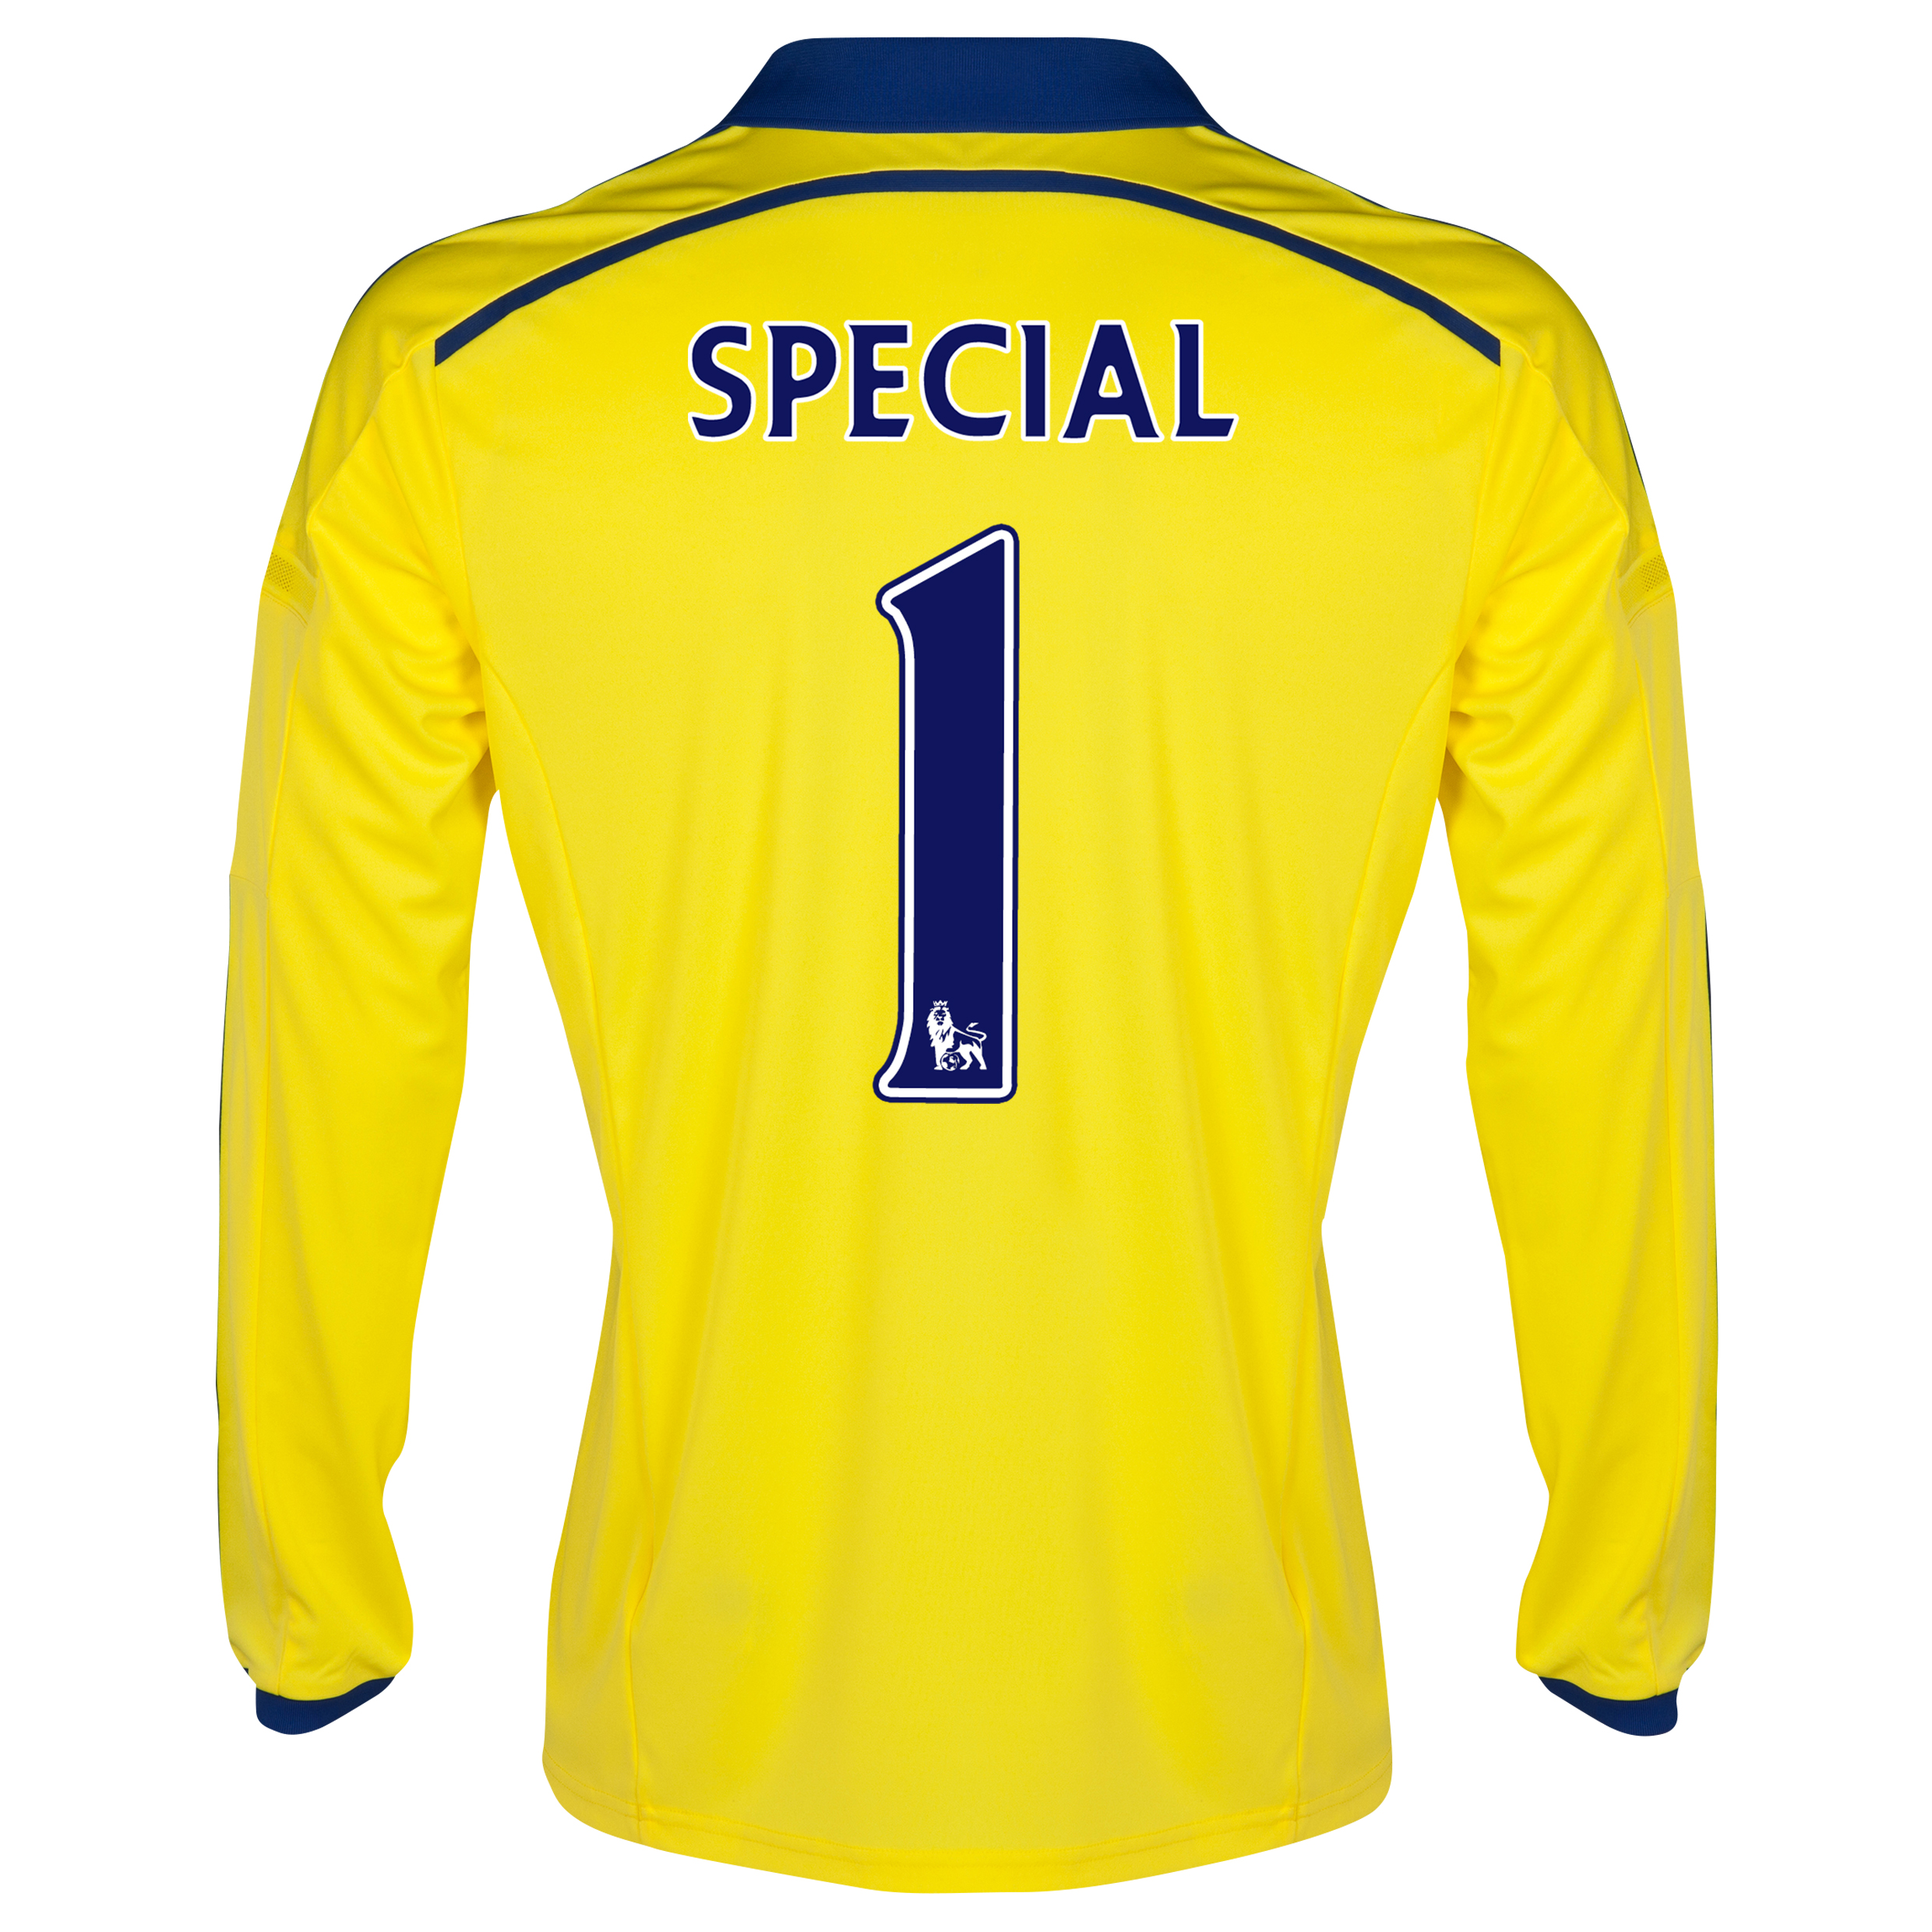 Chelsea Away Shirt 2014/15 - Long Sleeve Yellow with Special 1 printing